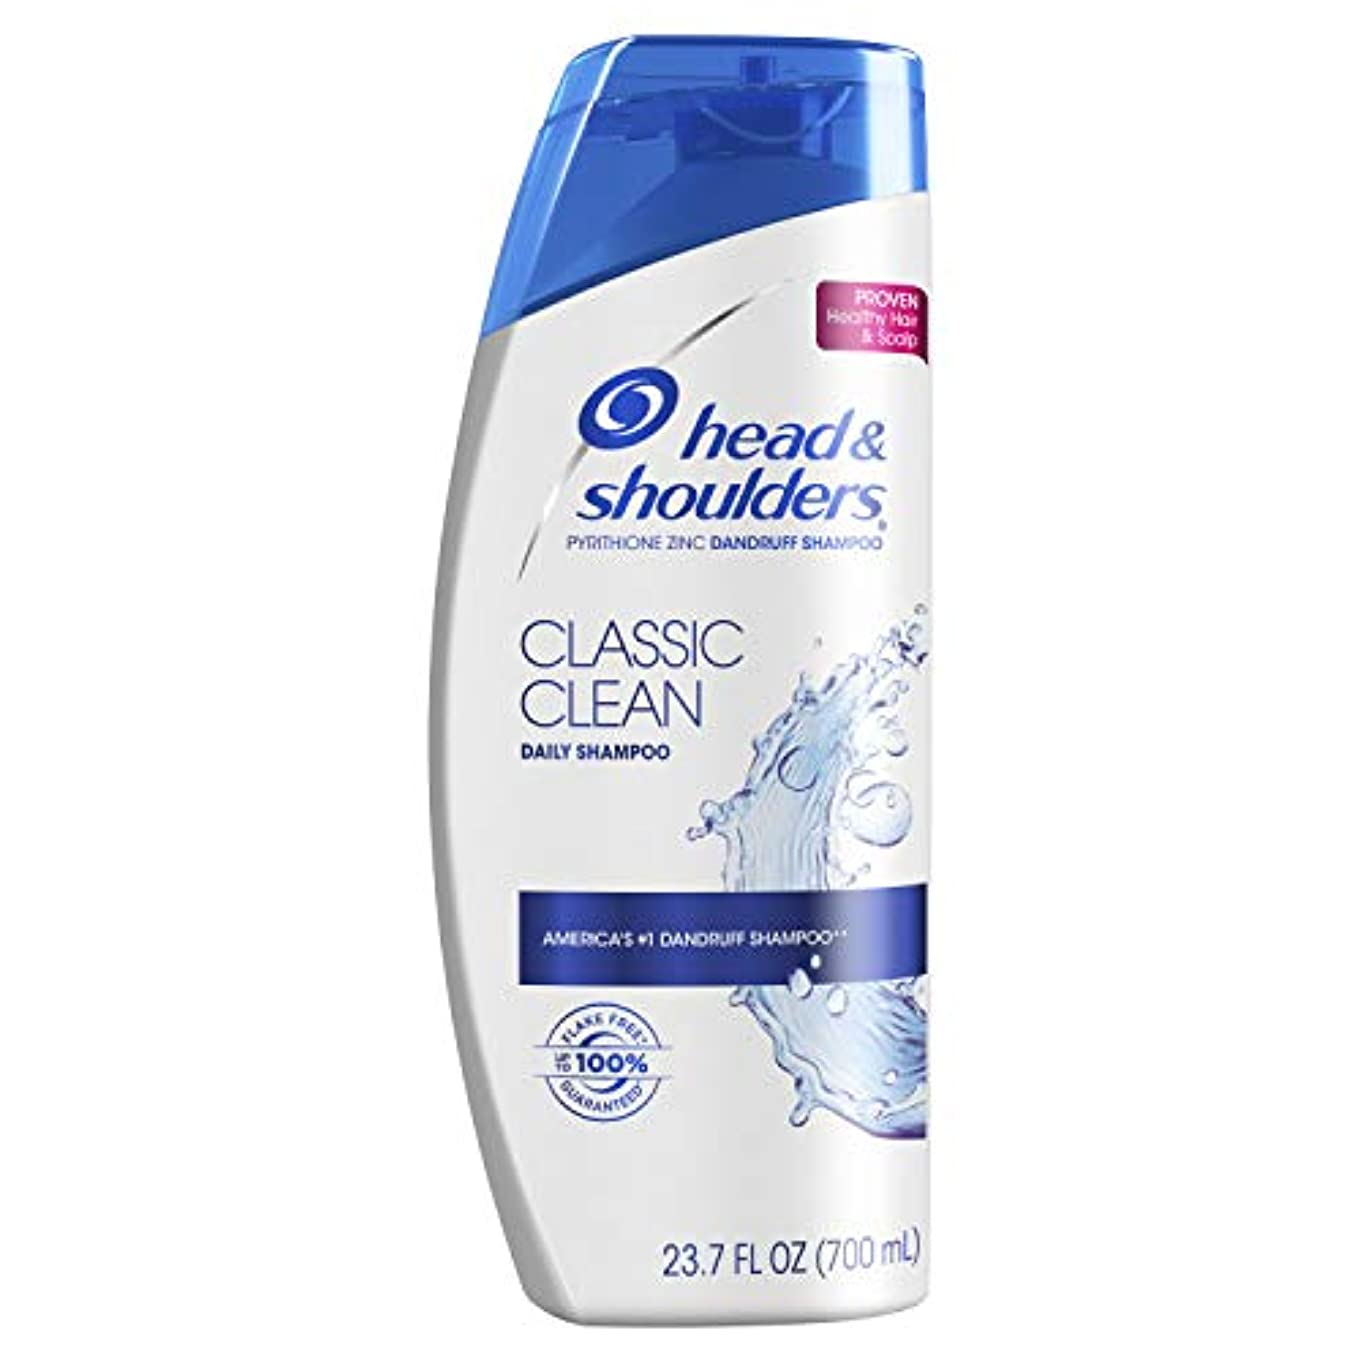 ヤングネックレット歯Head & Shoulders Classic Clean Dandruff Shampoo, 23.7 Oz by Head & Shoulders